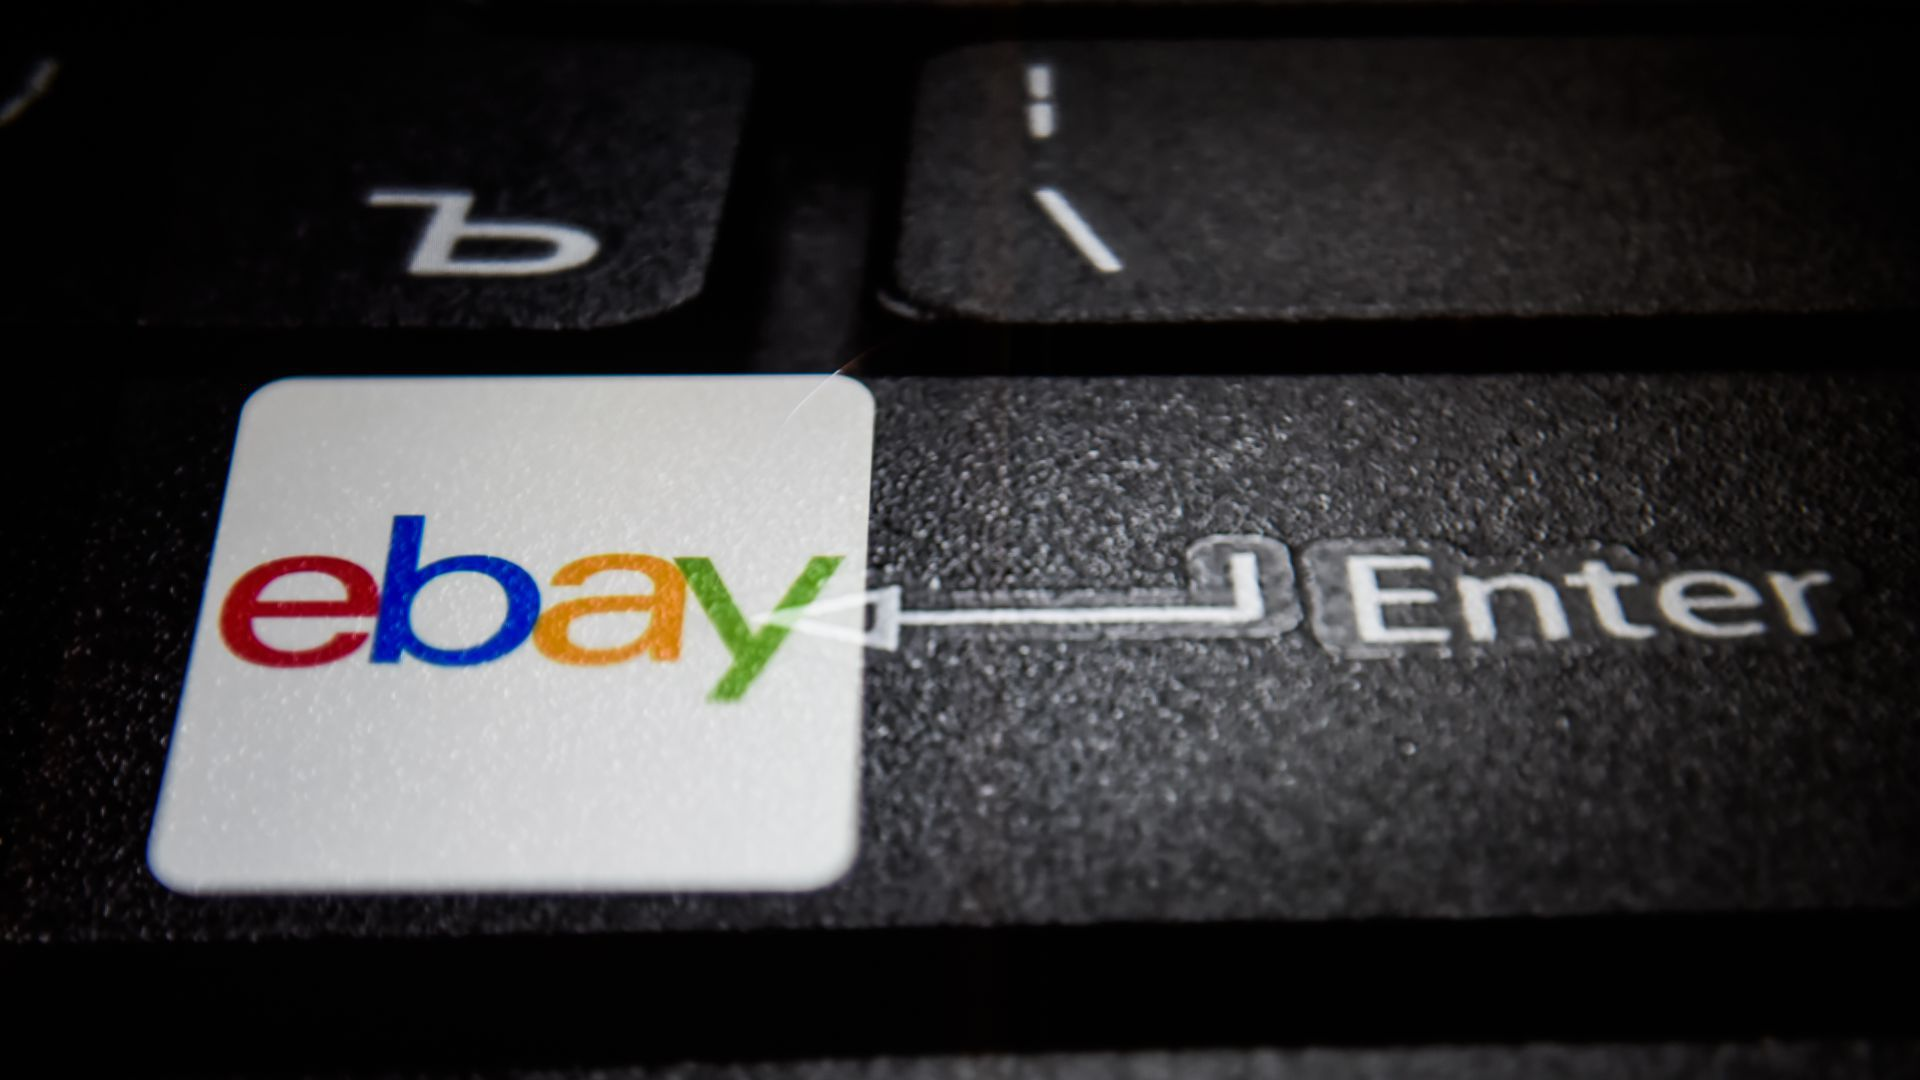 Ebay Urged To Spin Off Companies After Prolonged